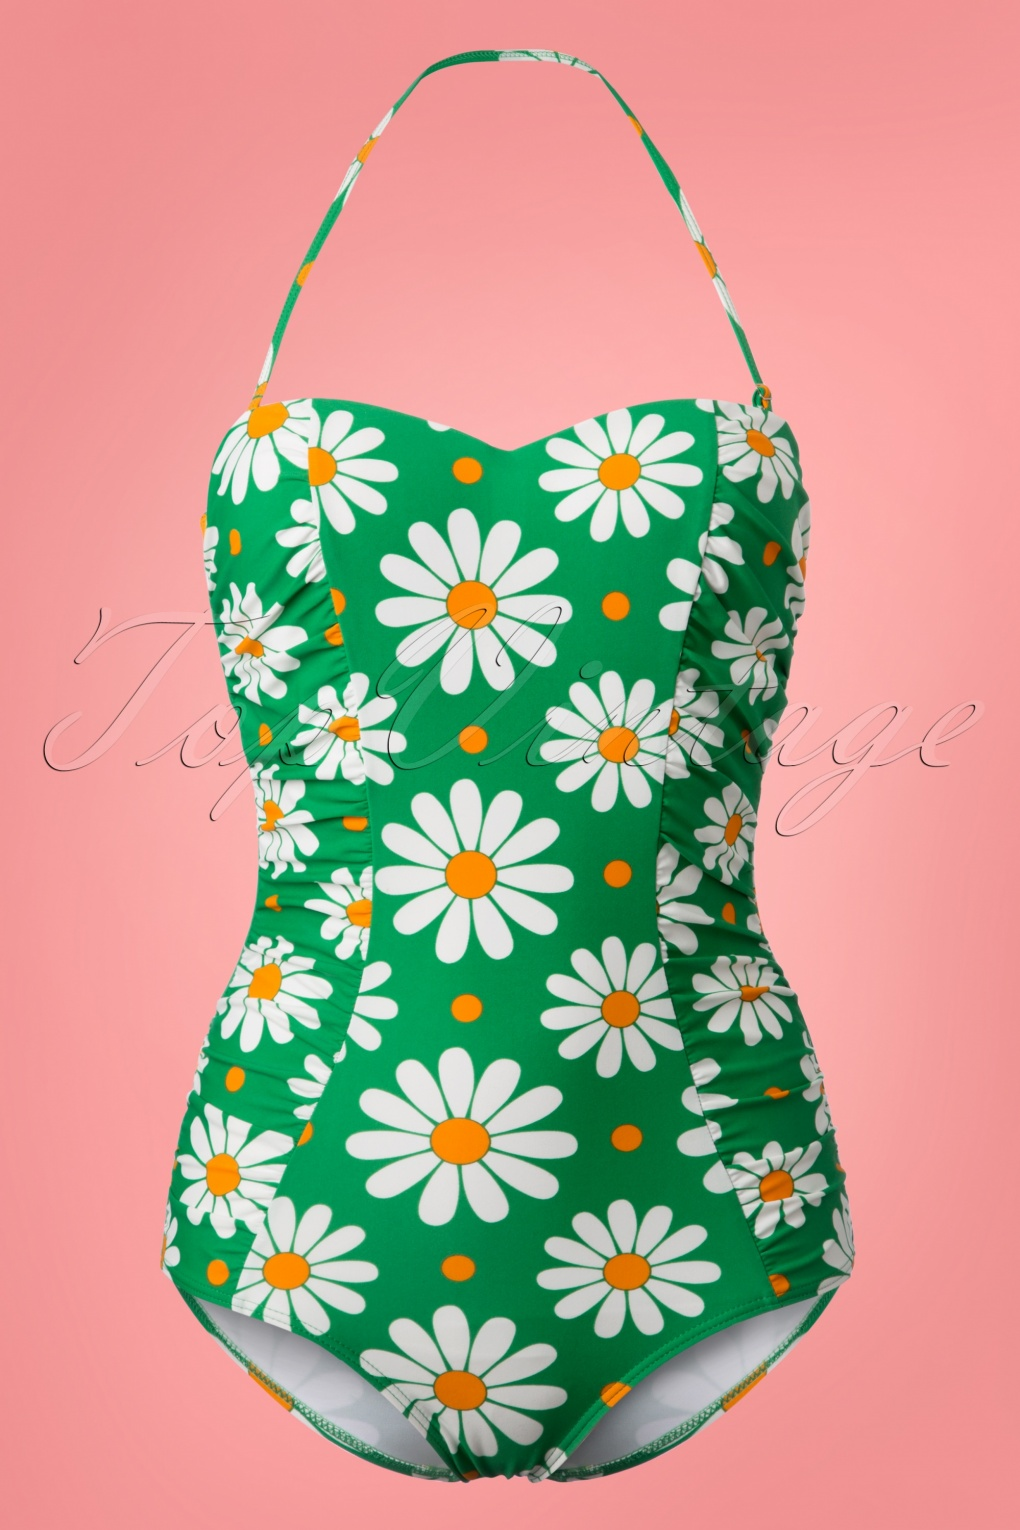 Vintage Bathing Suits | Retro Swimwear | Vintage Swimsuits 50s Crazy Daisy Halter Swimsuit in Grass Green £38.83 AT vintagedancer.com